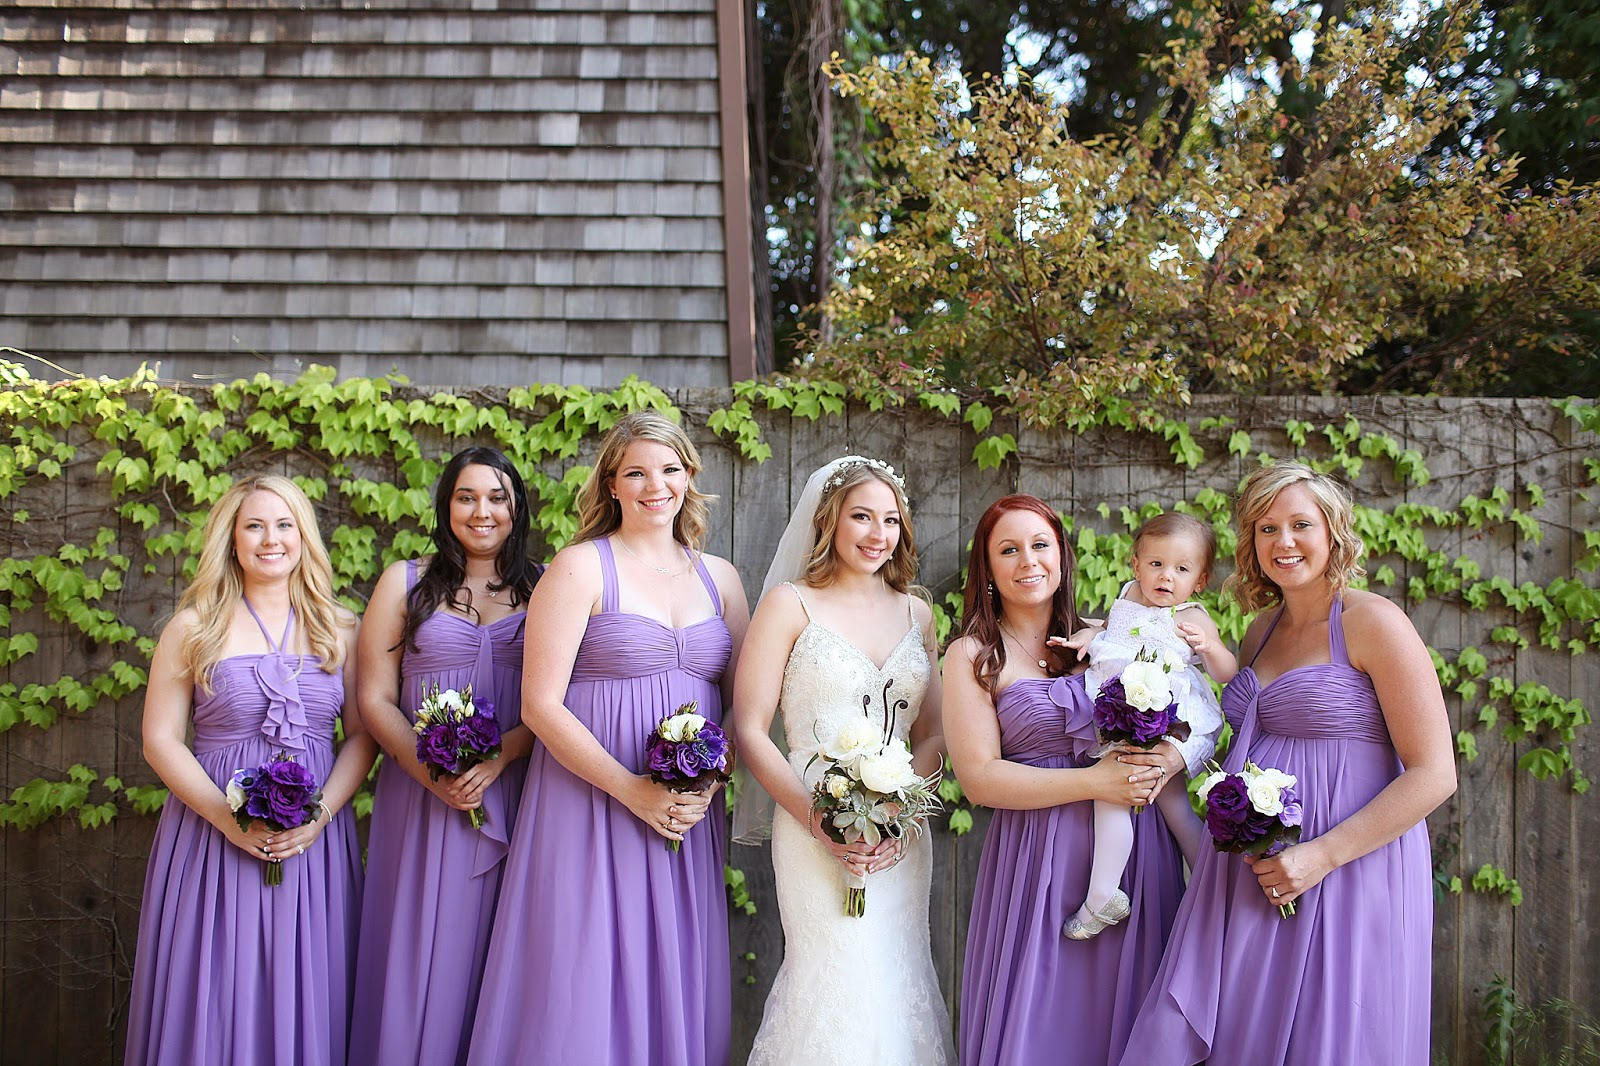 Bridesmaids dresses different styles same color choice image bridesmaids dresses different styles same color choice image bridesmaids dresses different styles same color images bridesmaid ombrellifo Images